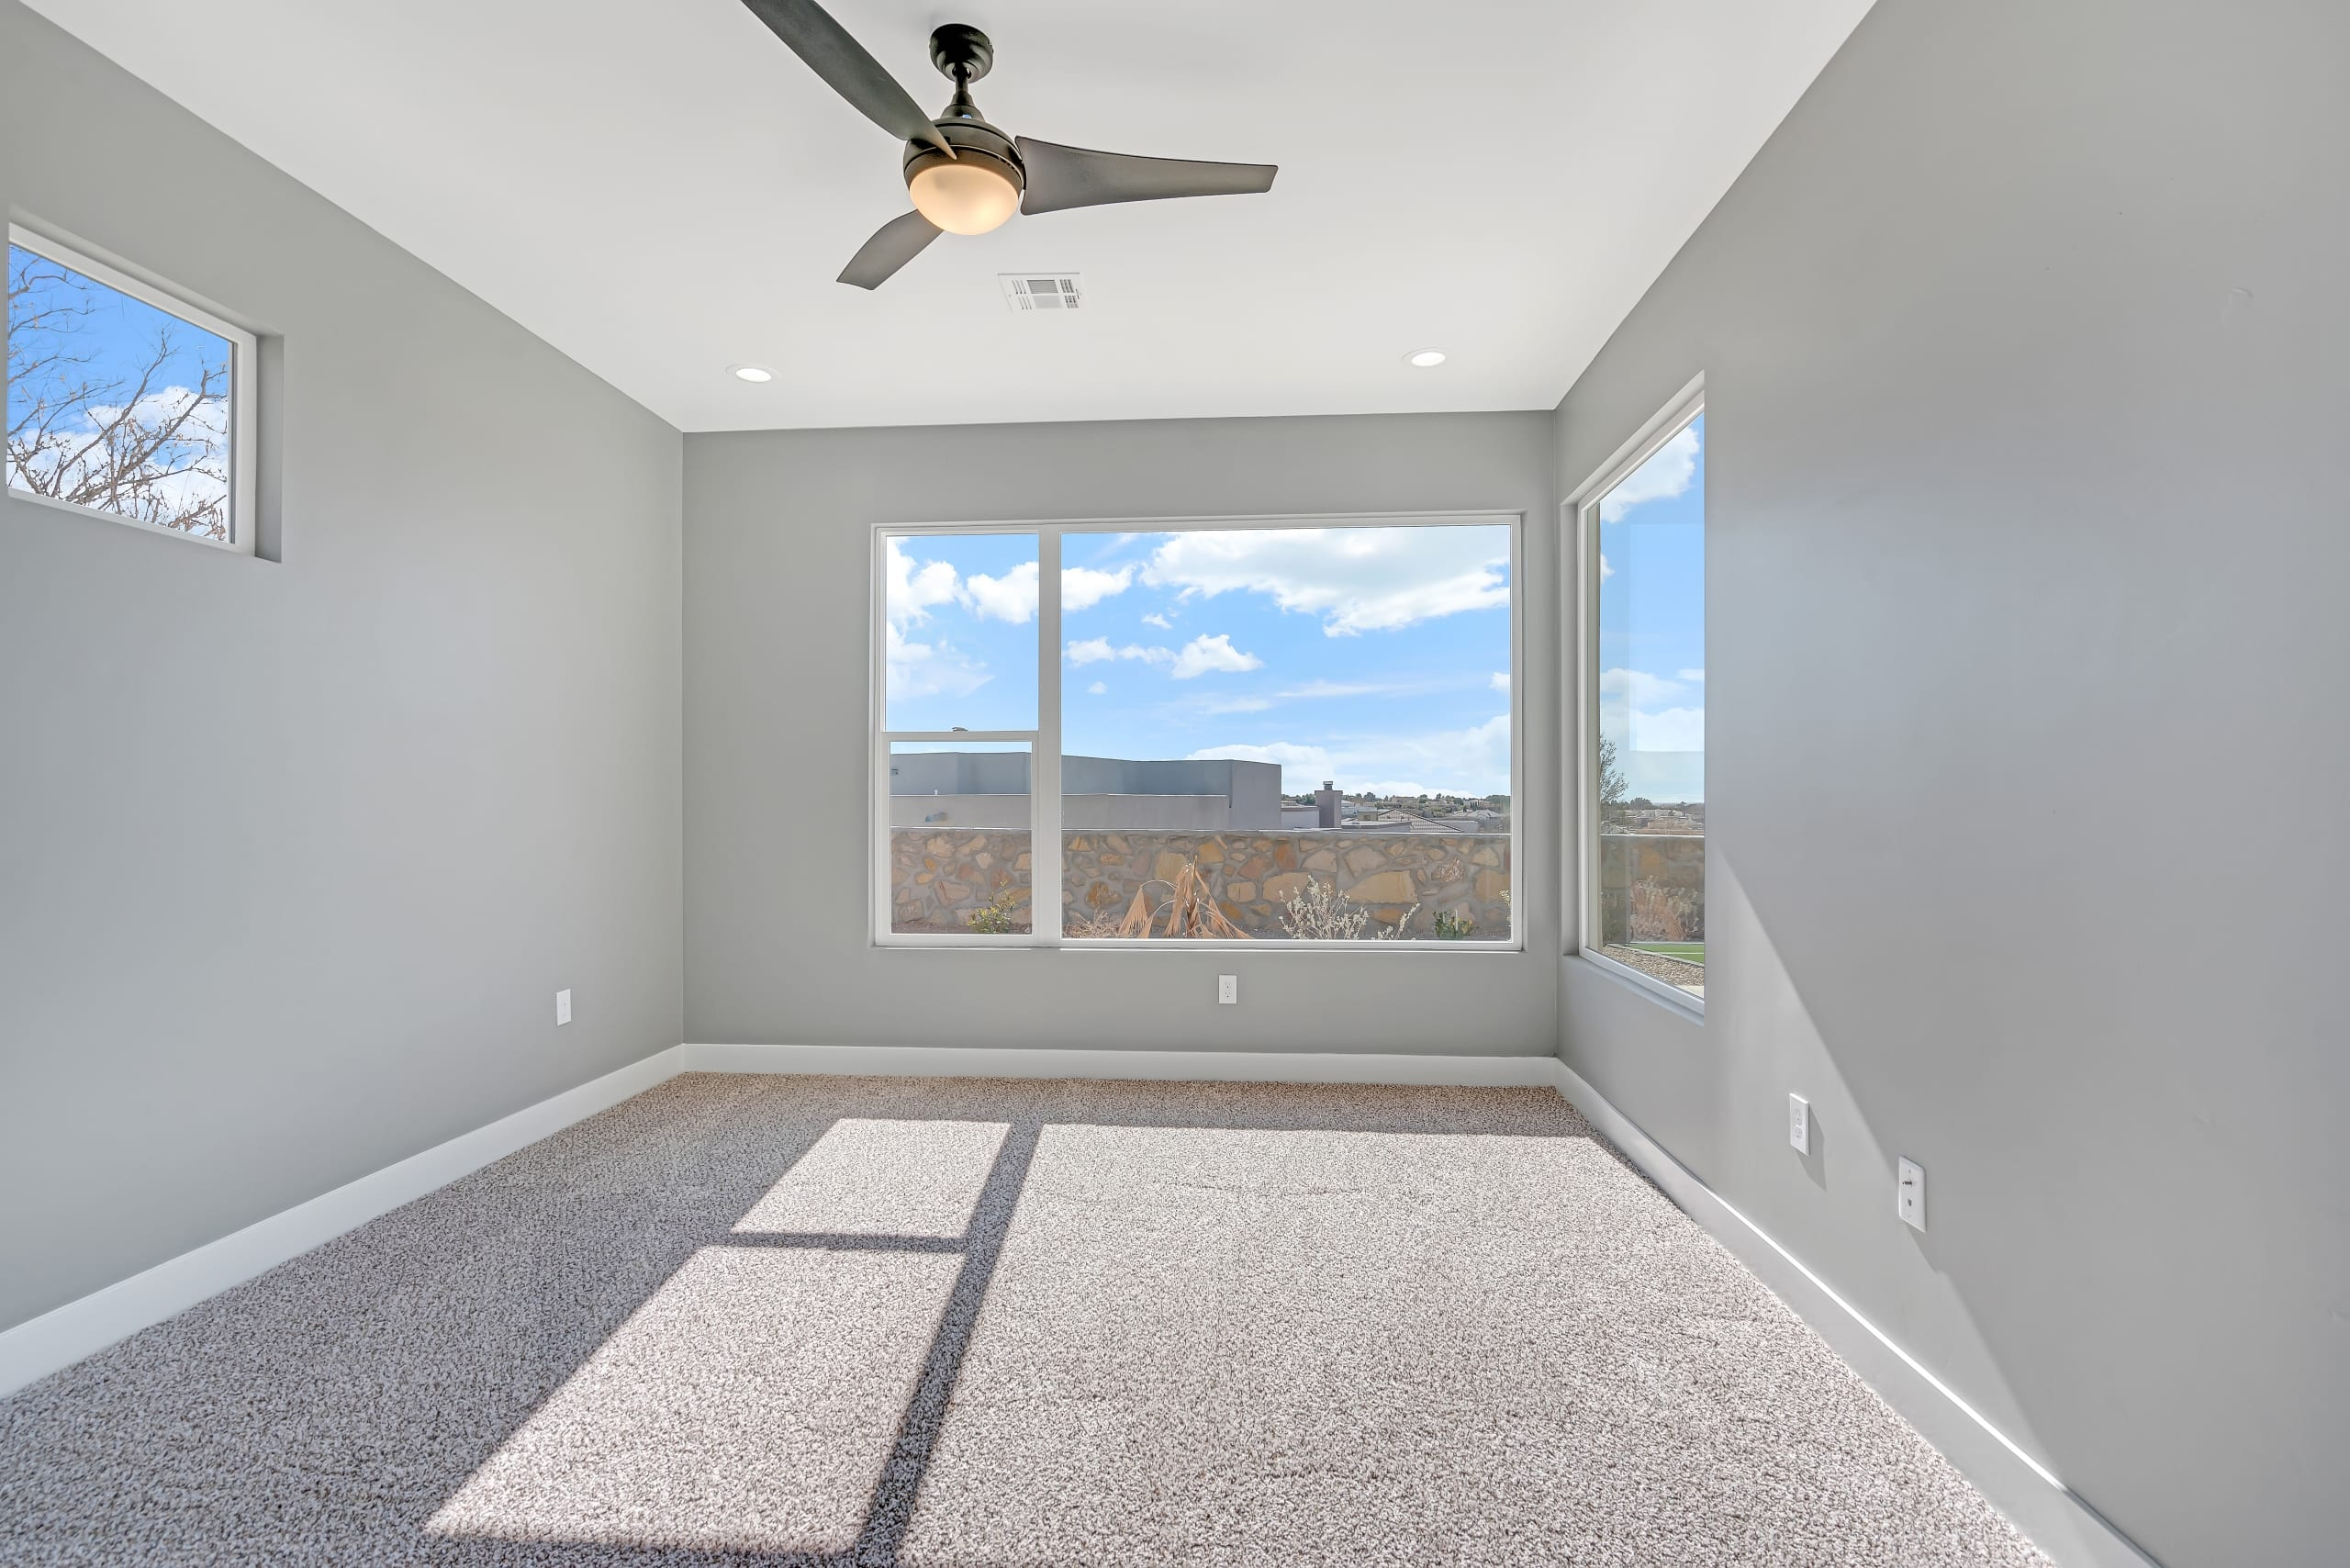 Spare Bedroom - Large Windows - View from doorway entrance